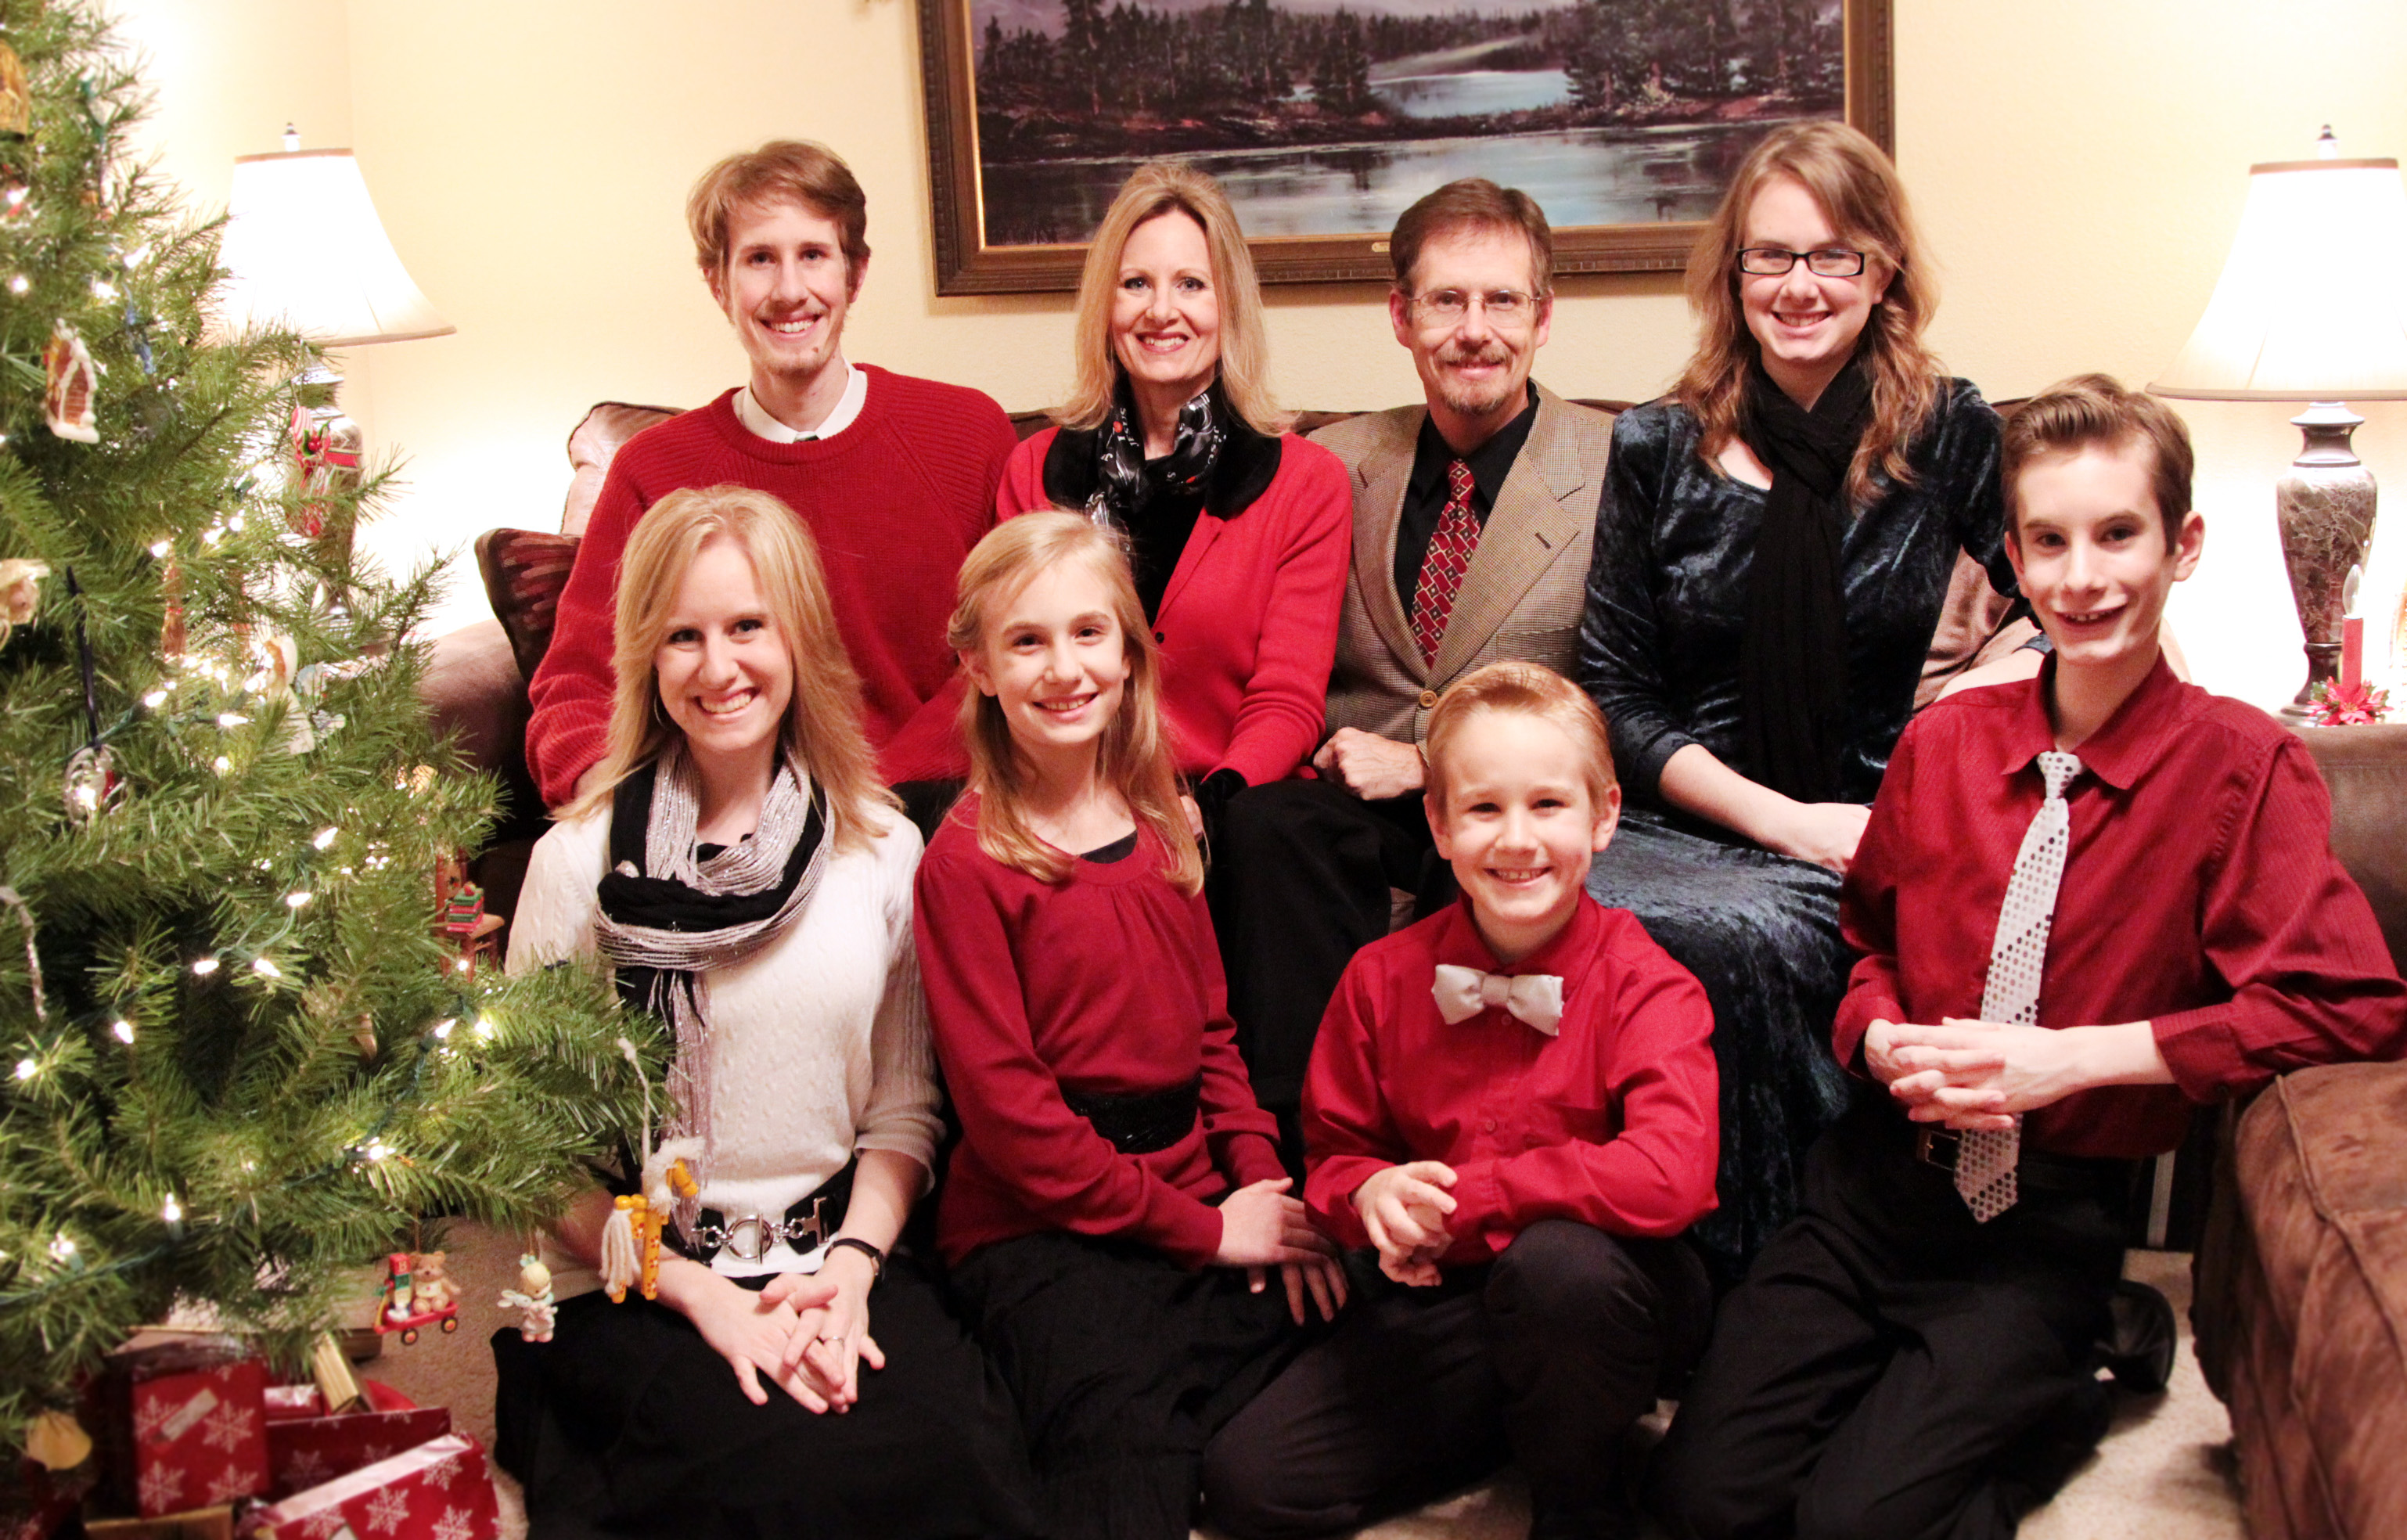 The Garms Family - Christmas Eve 2012